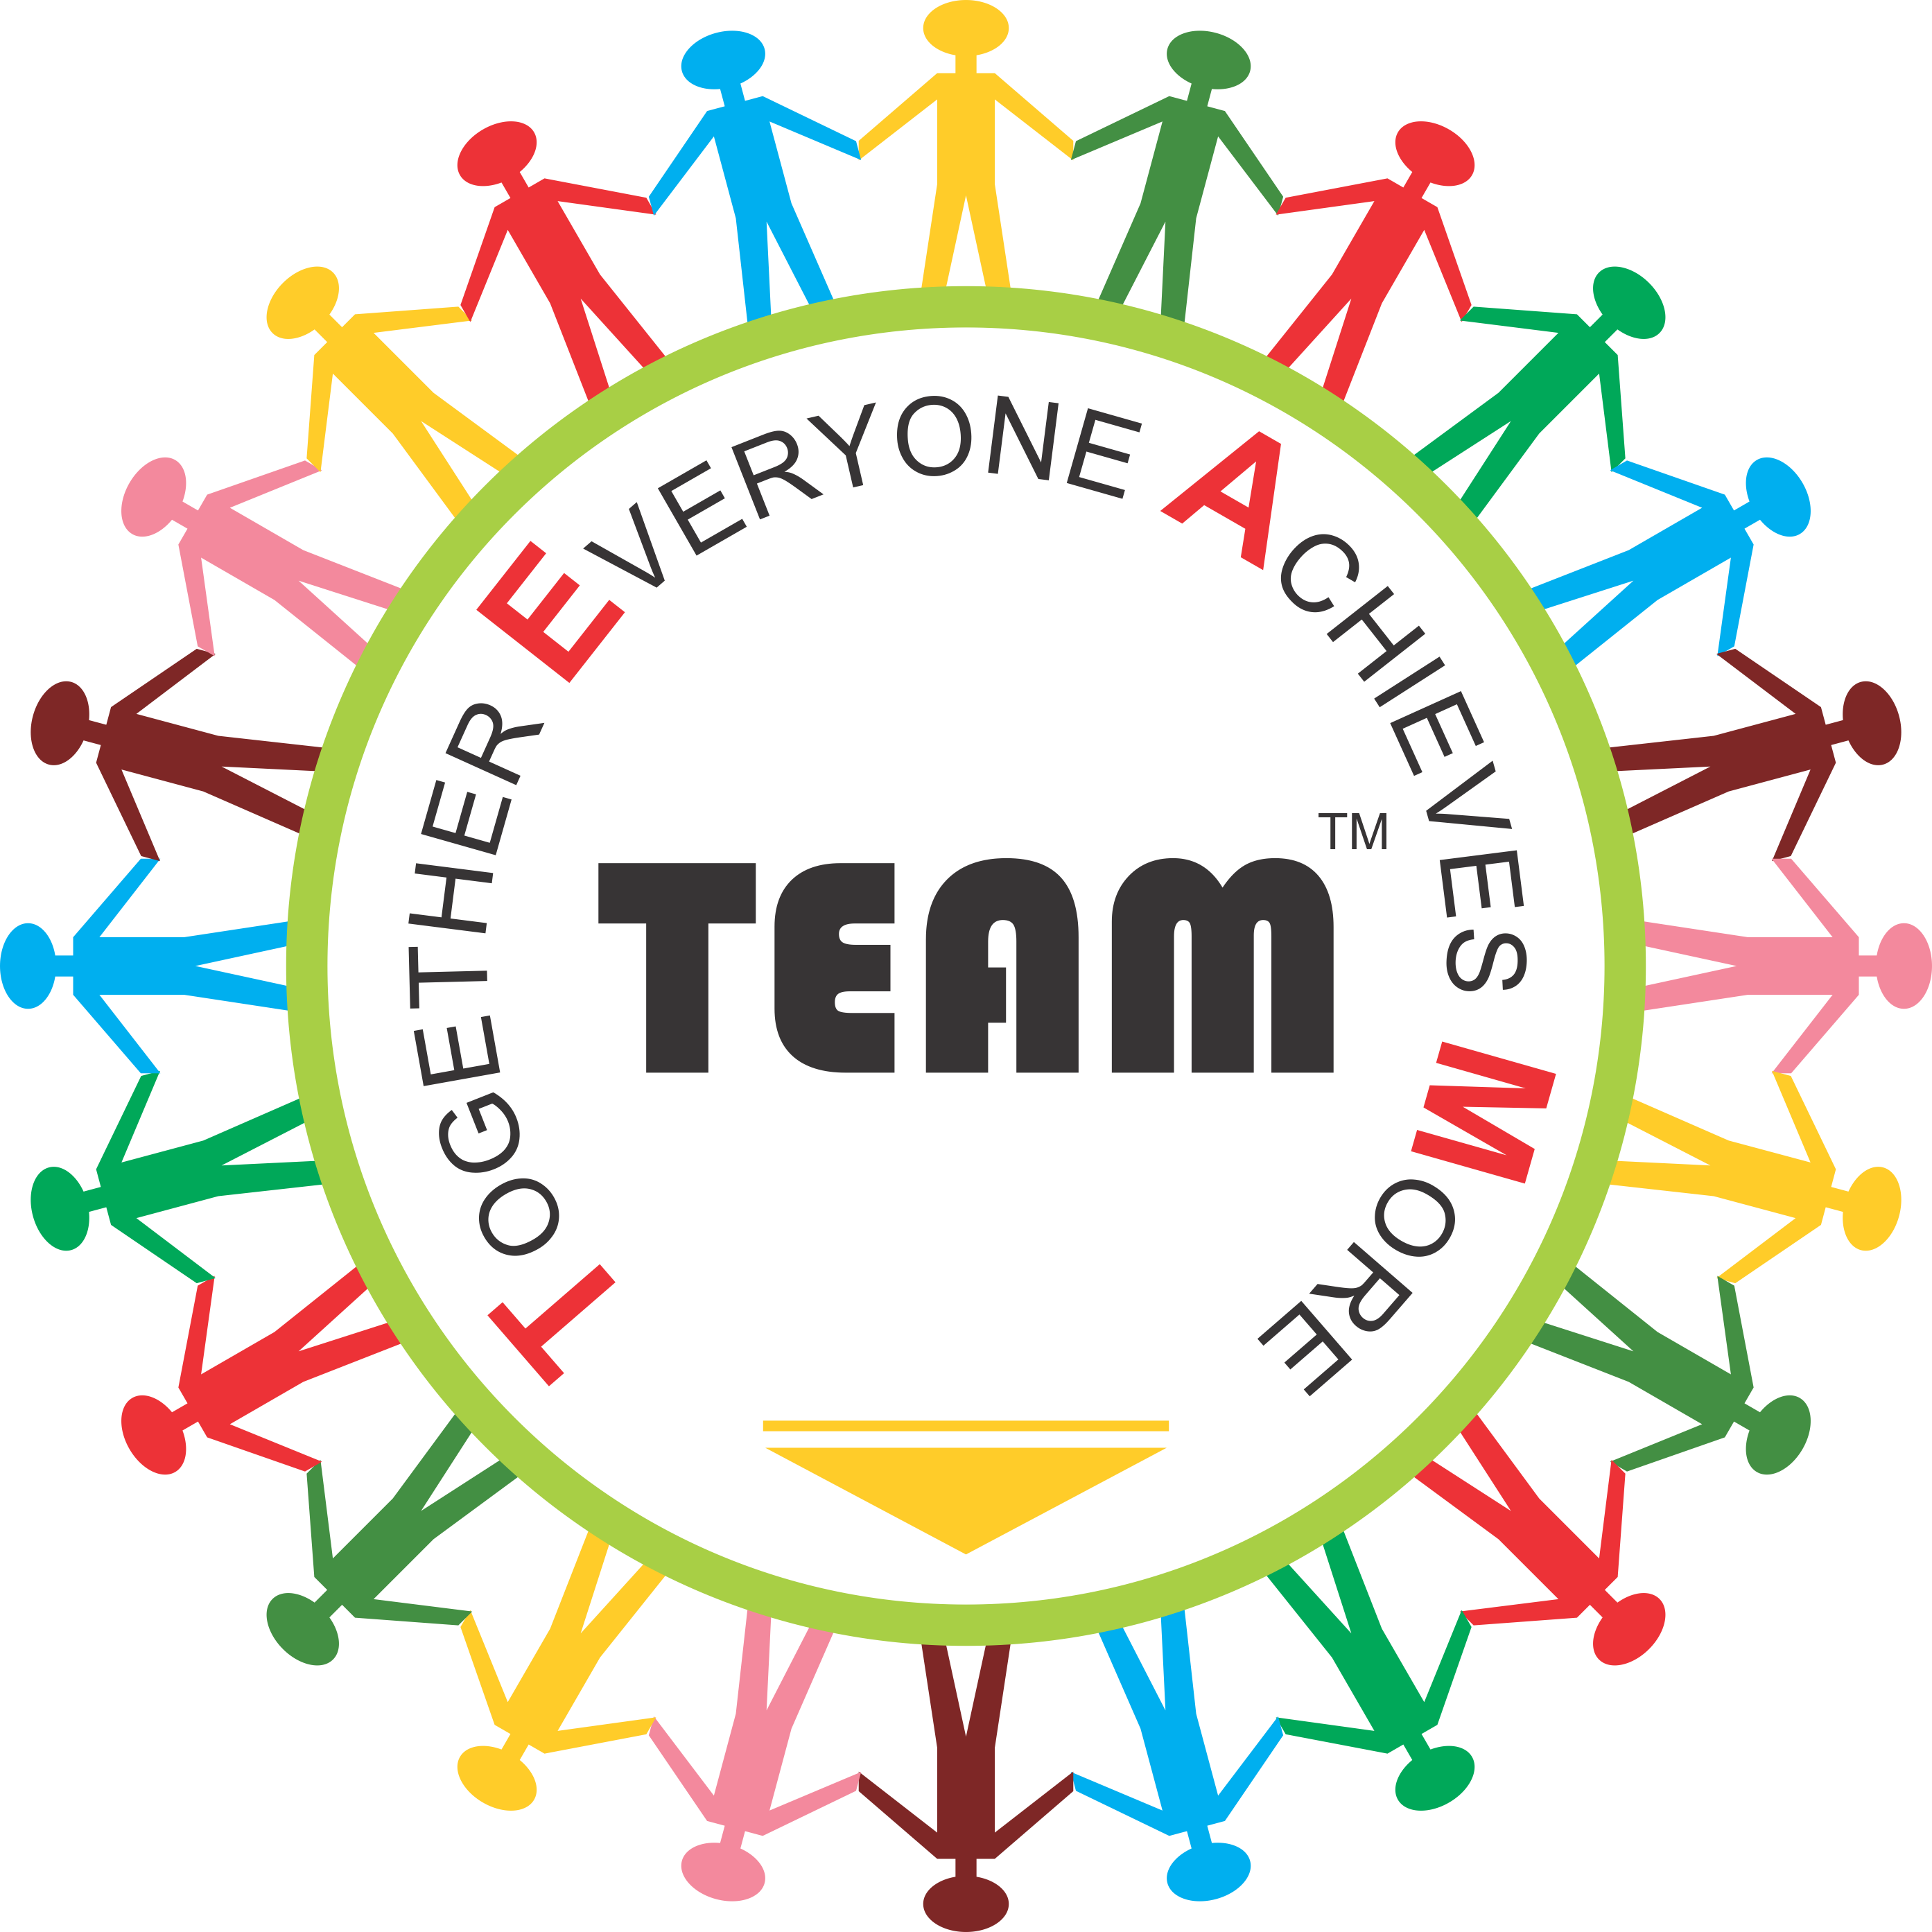 Network clipart road network. Team together everyone achieves